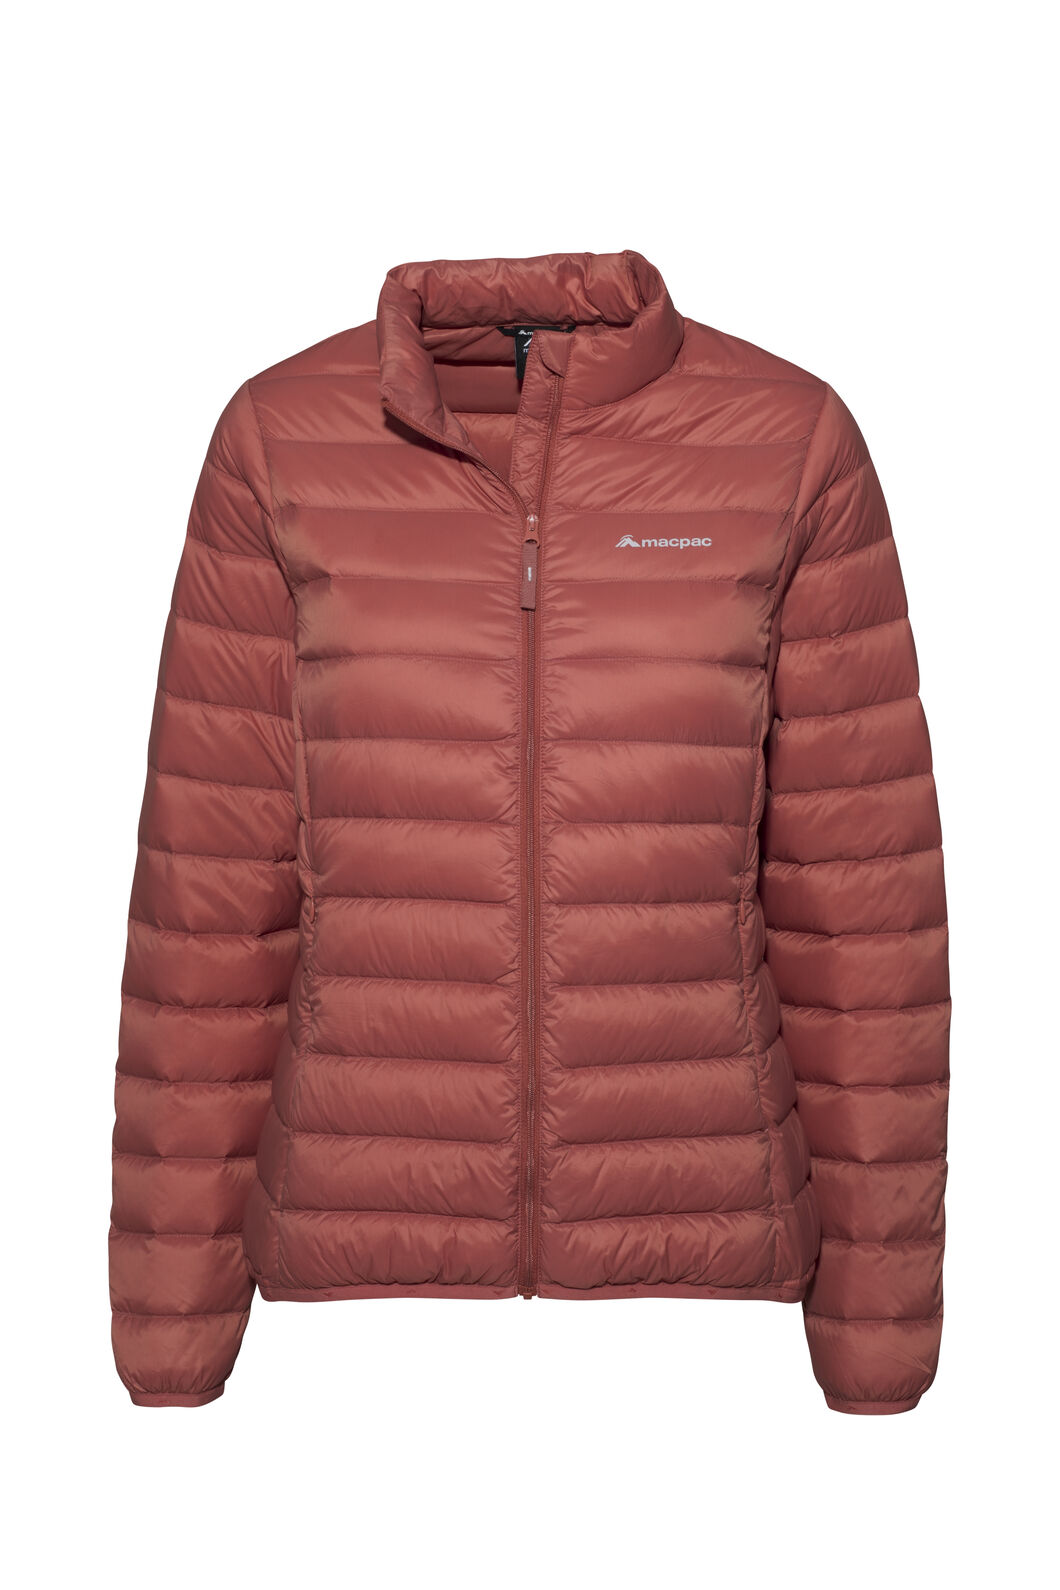 Macpac Uber Light Down Jacket - Women's, Dusty Cedar, hi-res